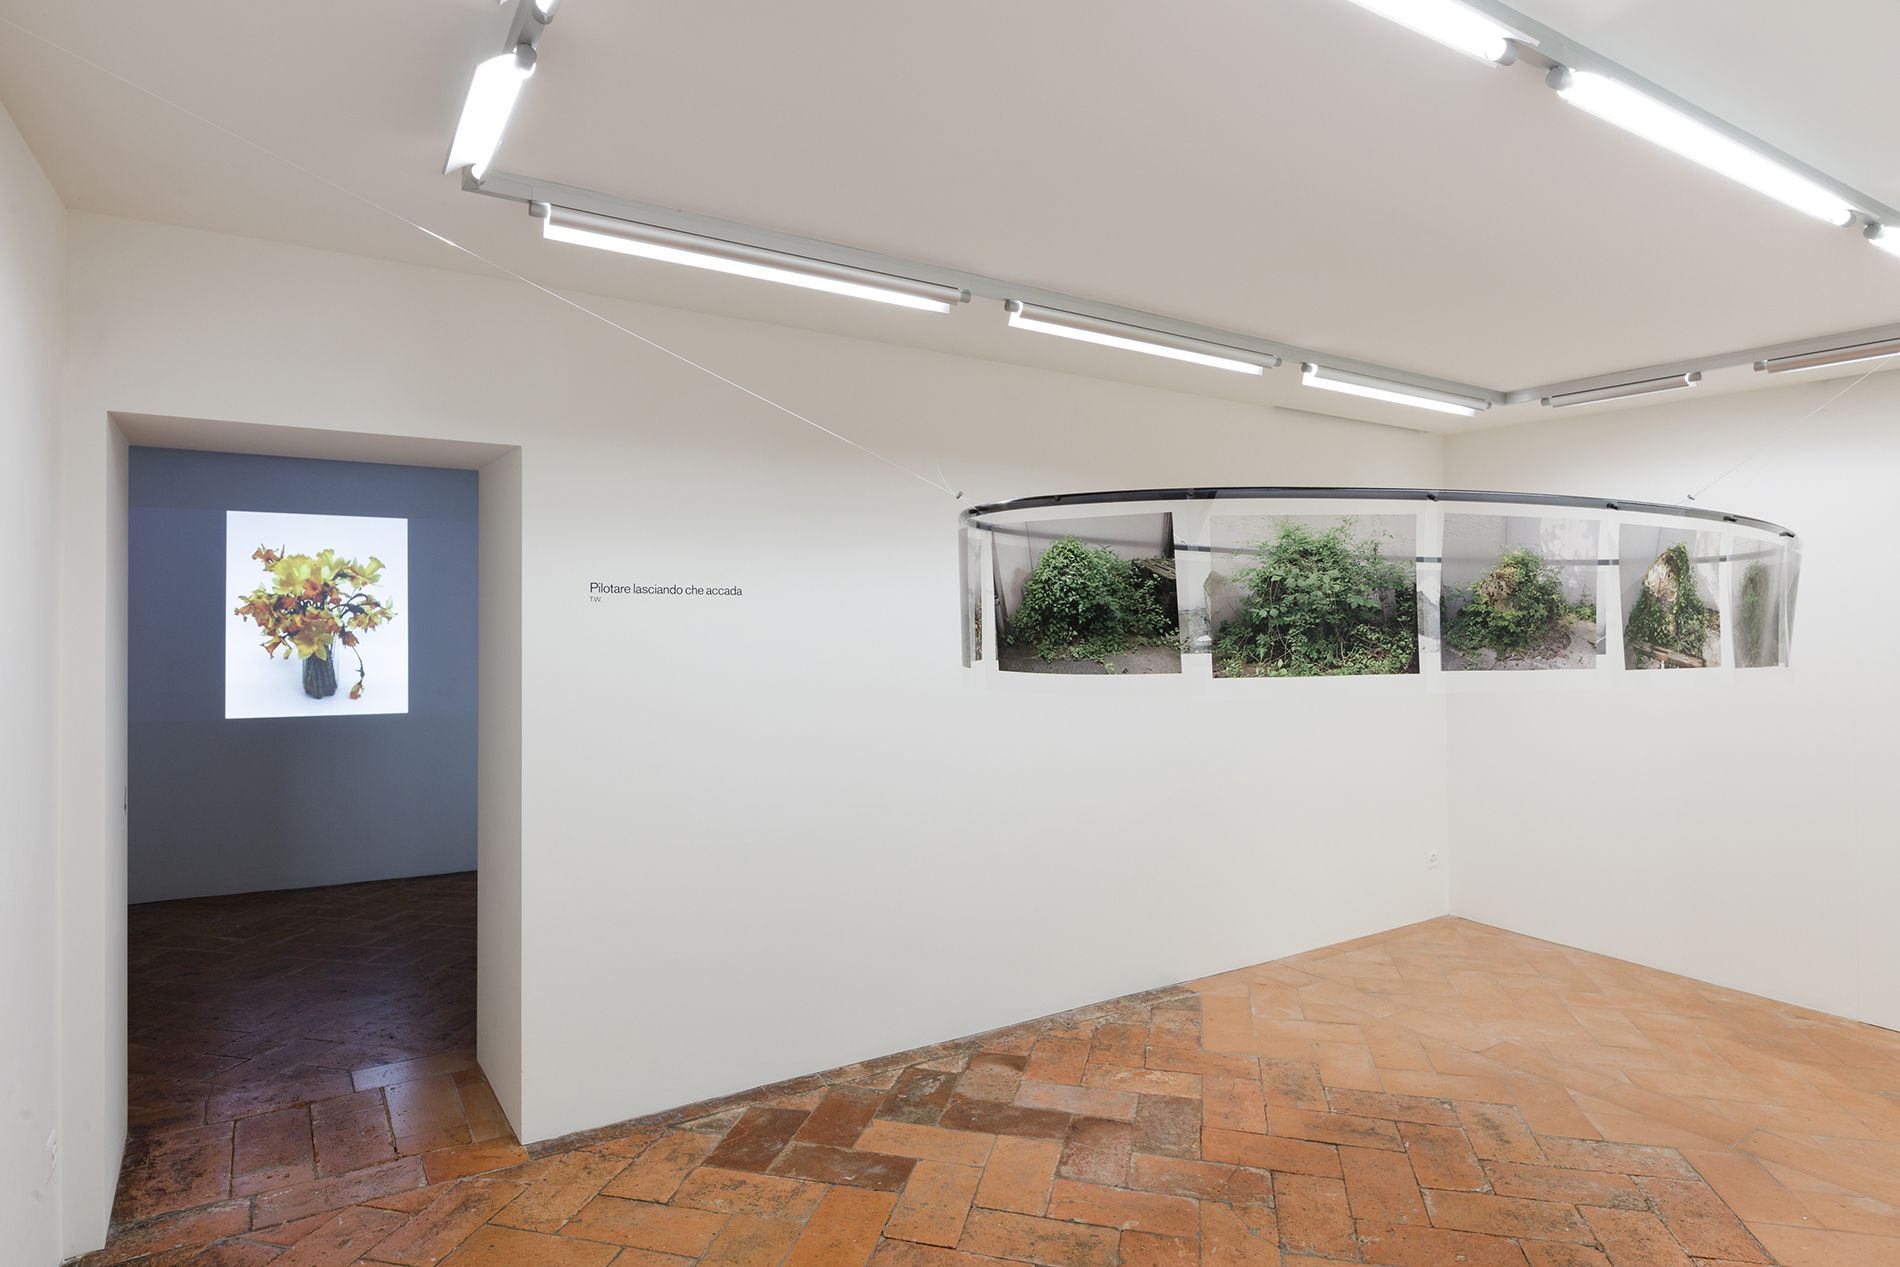 Teres Wydler, Ausstellungsansicht. Links: Lily's. Artificio in natura, natura in artificio, 2018, video. Rechts: Cà verde, 2002-2018, Installation, 14 Prints auf Transparentpapier auf einer Stahlellipse mit Magneten